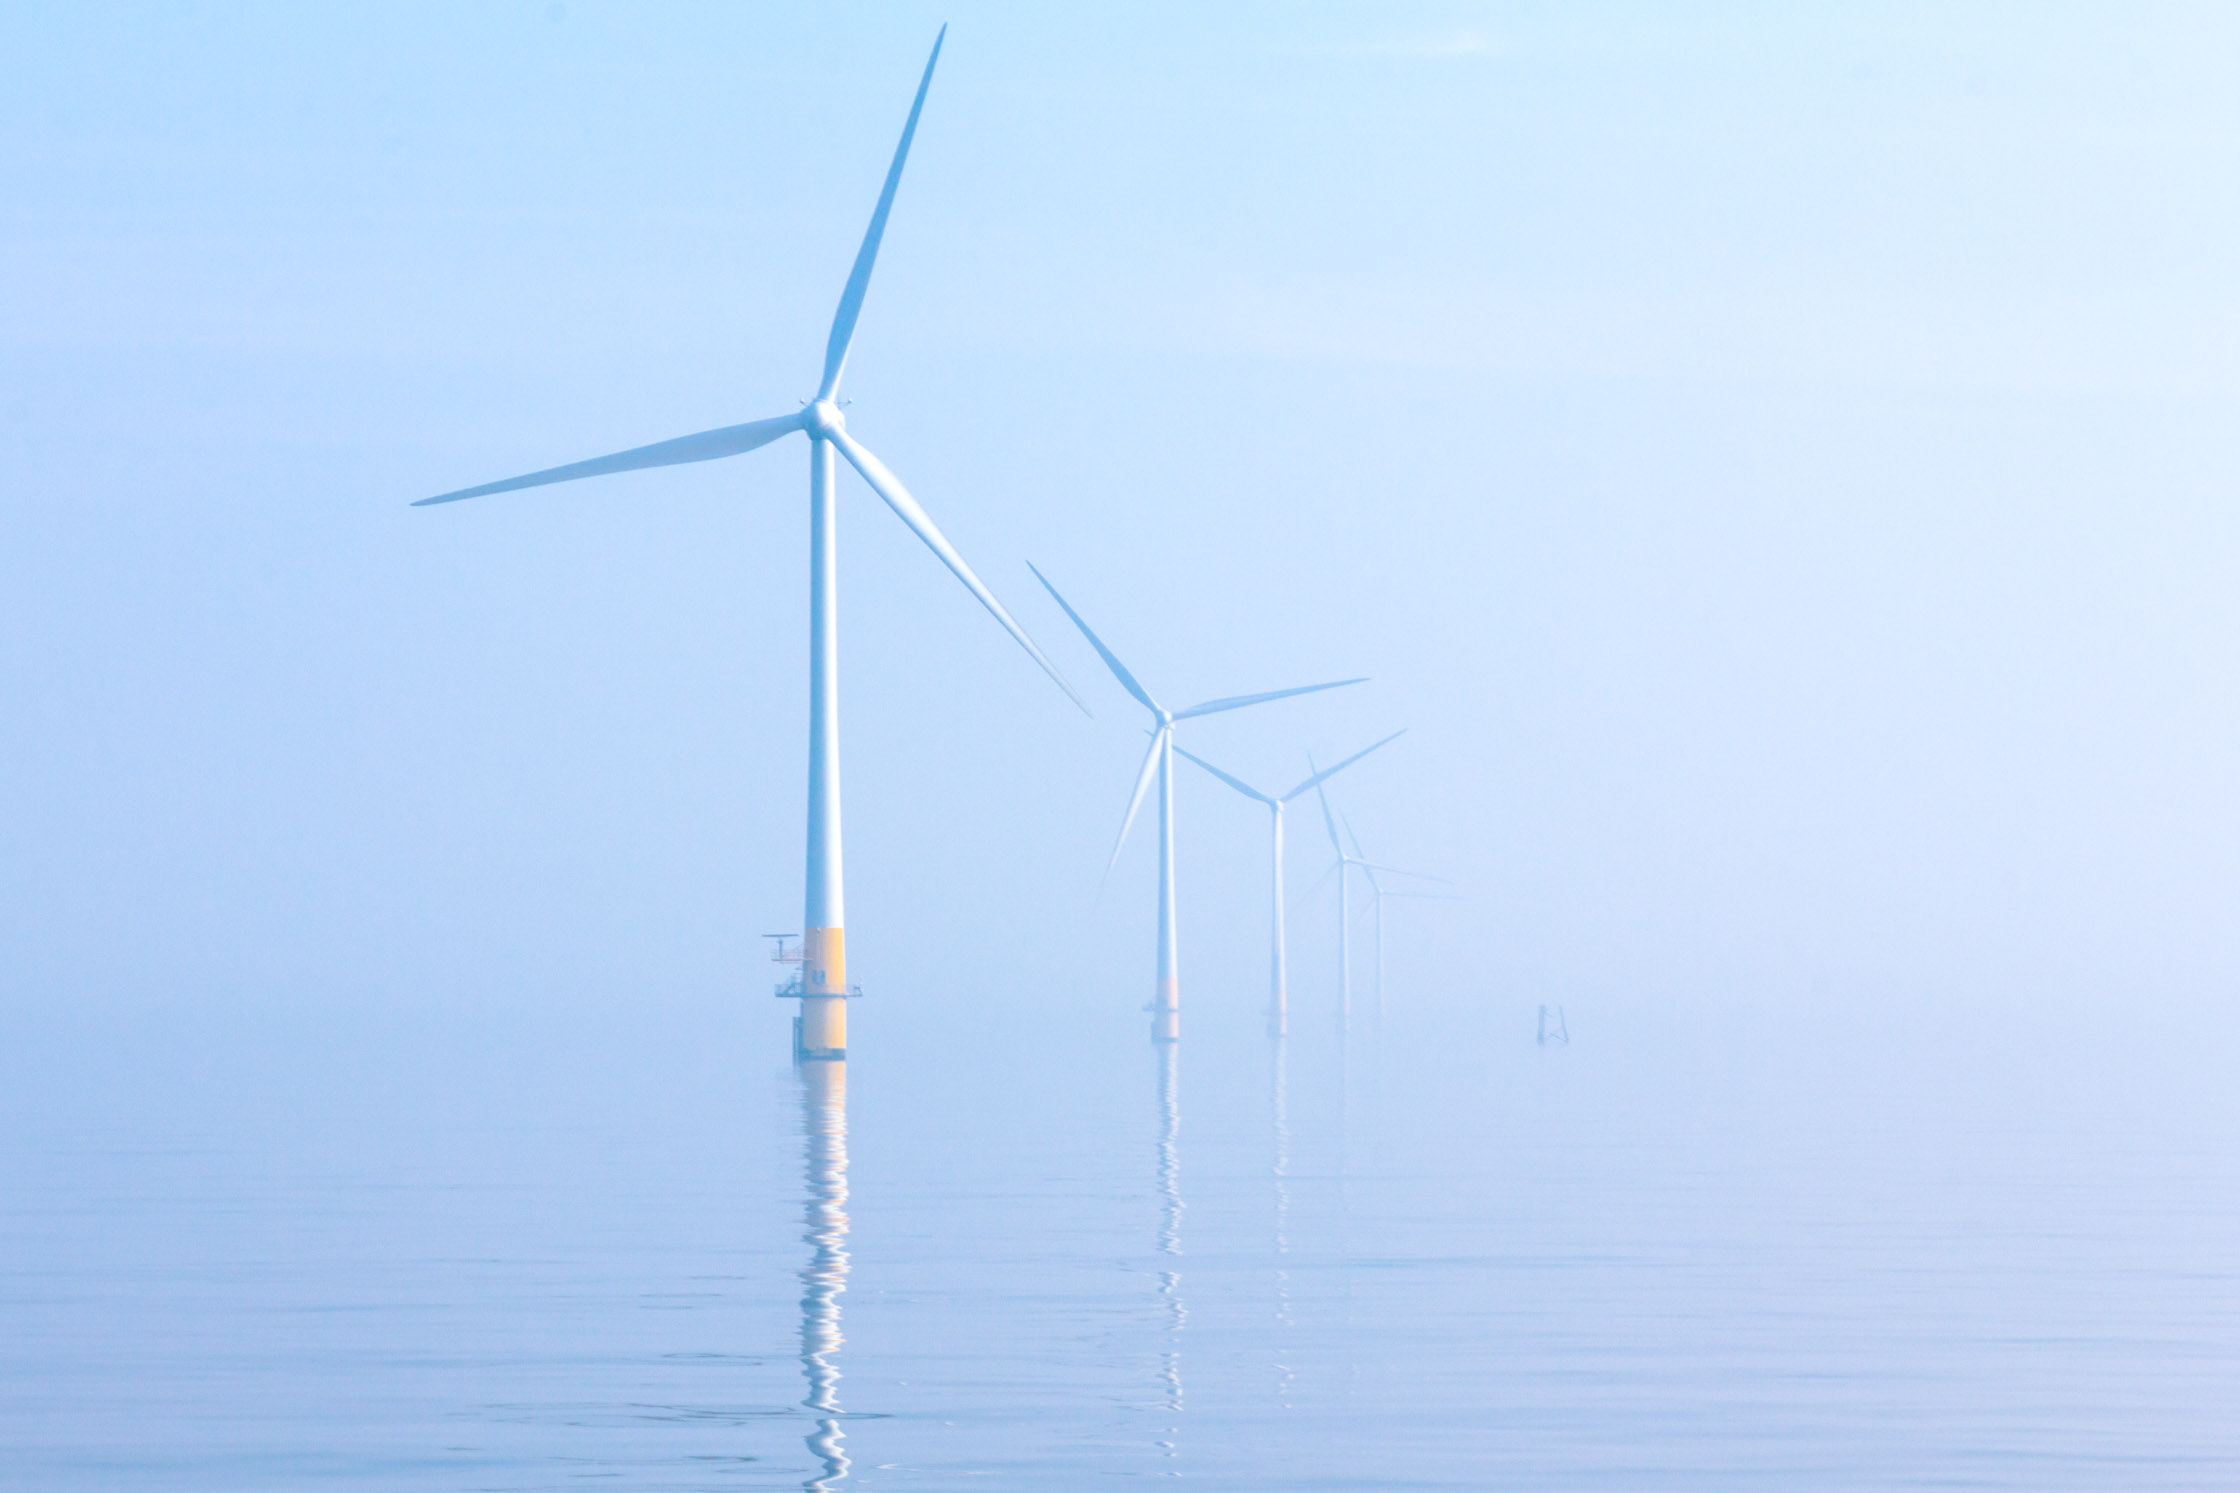 OFF SHORE WIND FARM, NORFOLK COAST - MARCH 03, 2012